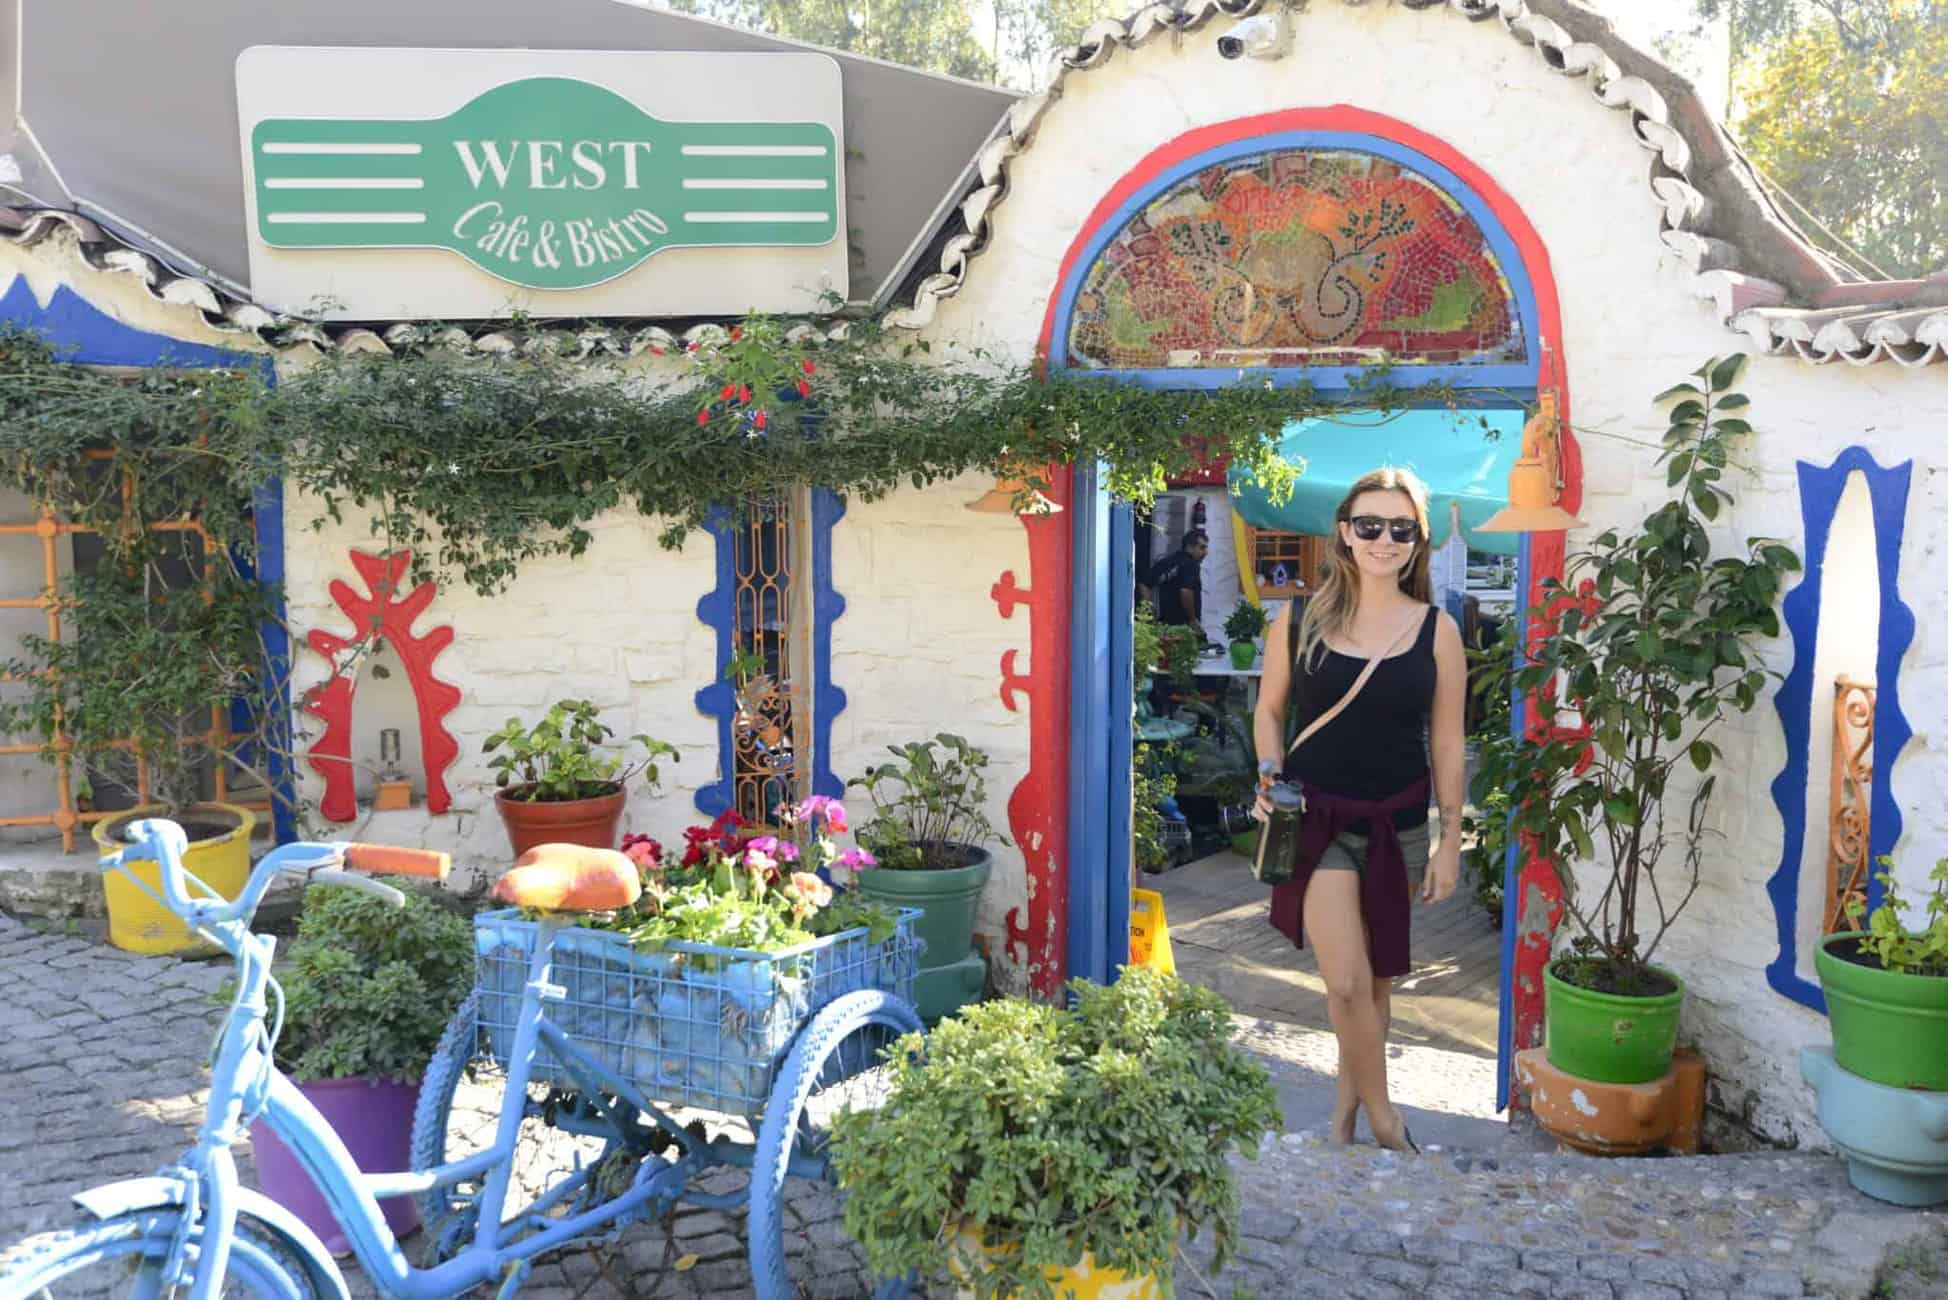 West Cafe and Bistro's funky entrance